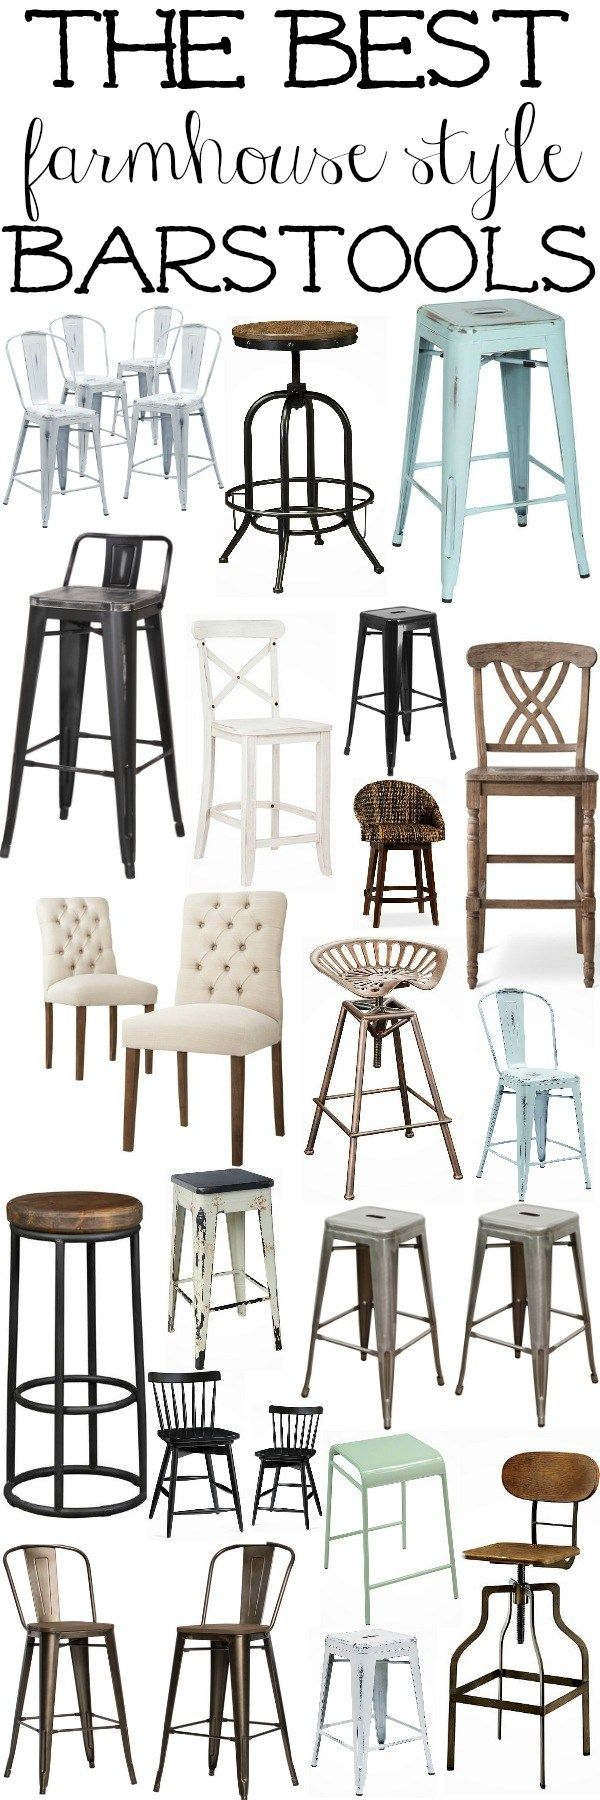 The best farmhouse style barstools - Great source for farmhouse decor for every room of the house!                                                                                                                                                                                 More